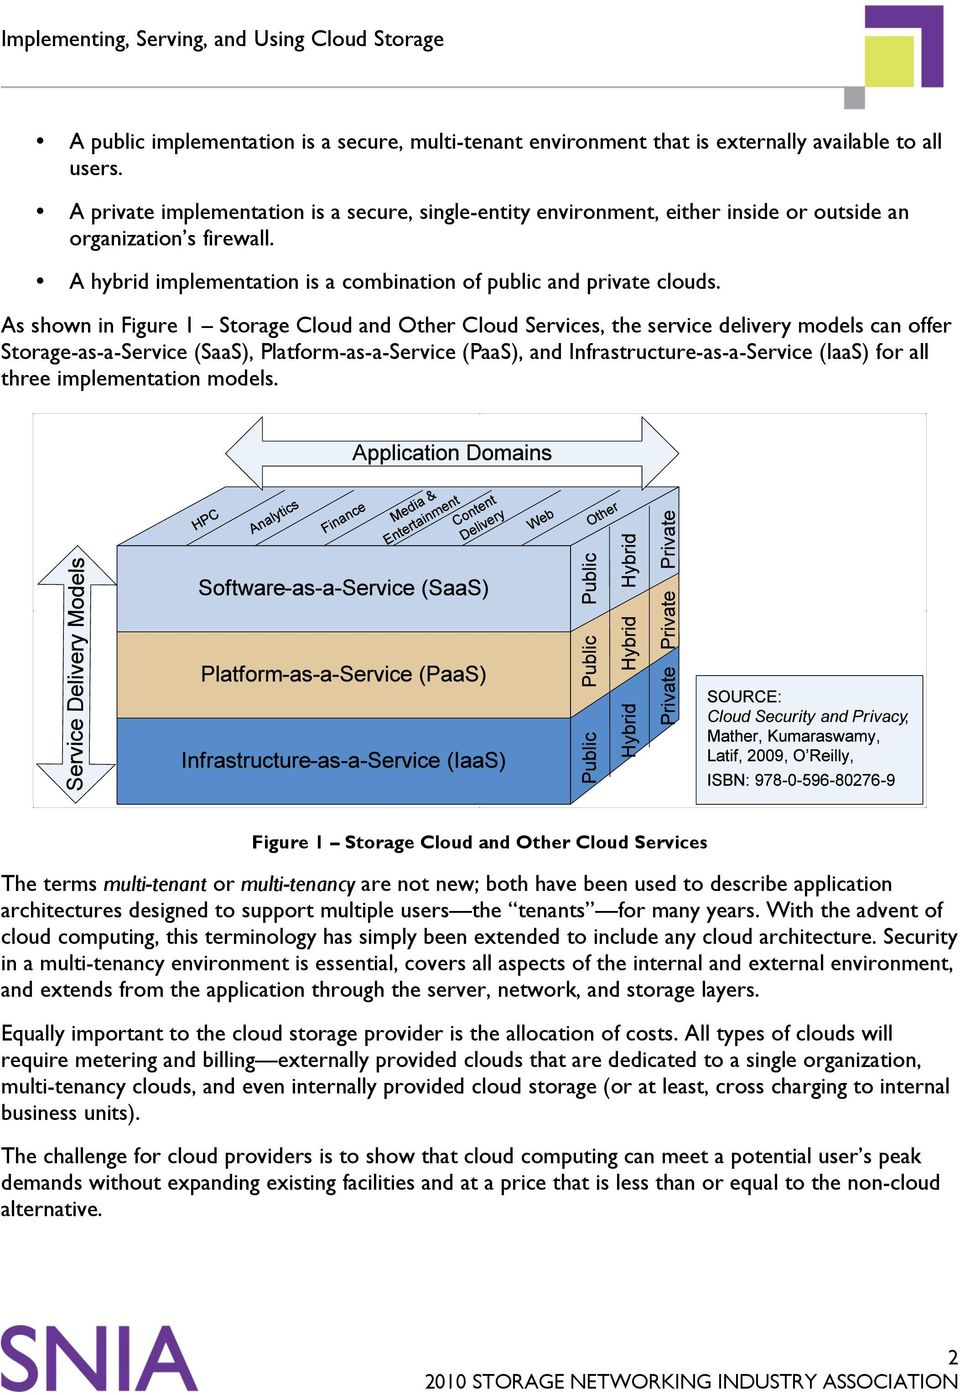 As shown in Figure 1 Storage Cloud and Other Cloud Services, the service delivery models can offer Storage-as-a-Service (SaaS), Platform-as-a-Service (PaaS), and Infrastructure-as-a-Service (IaaS)